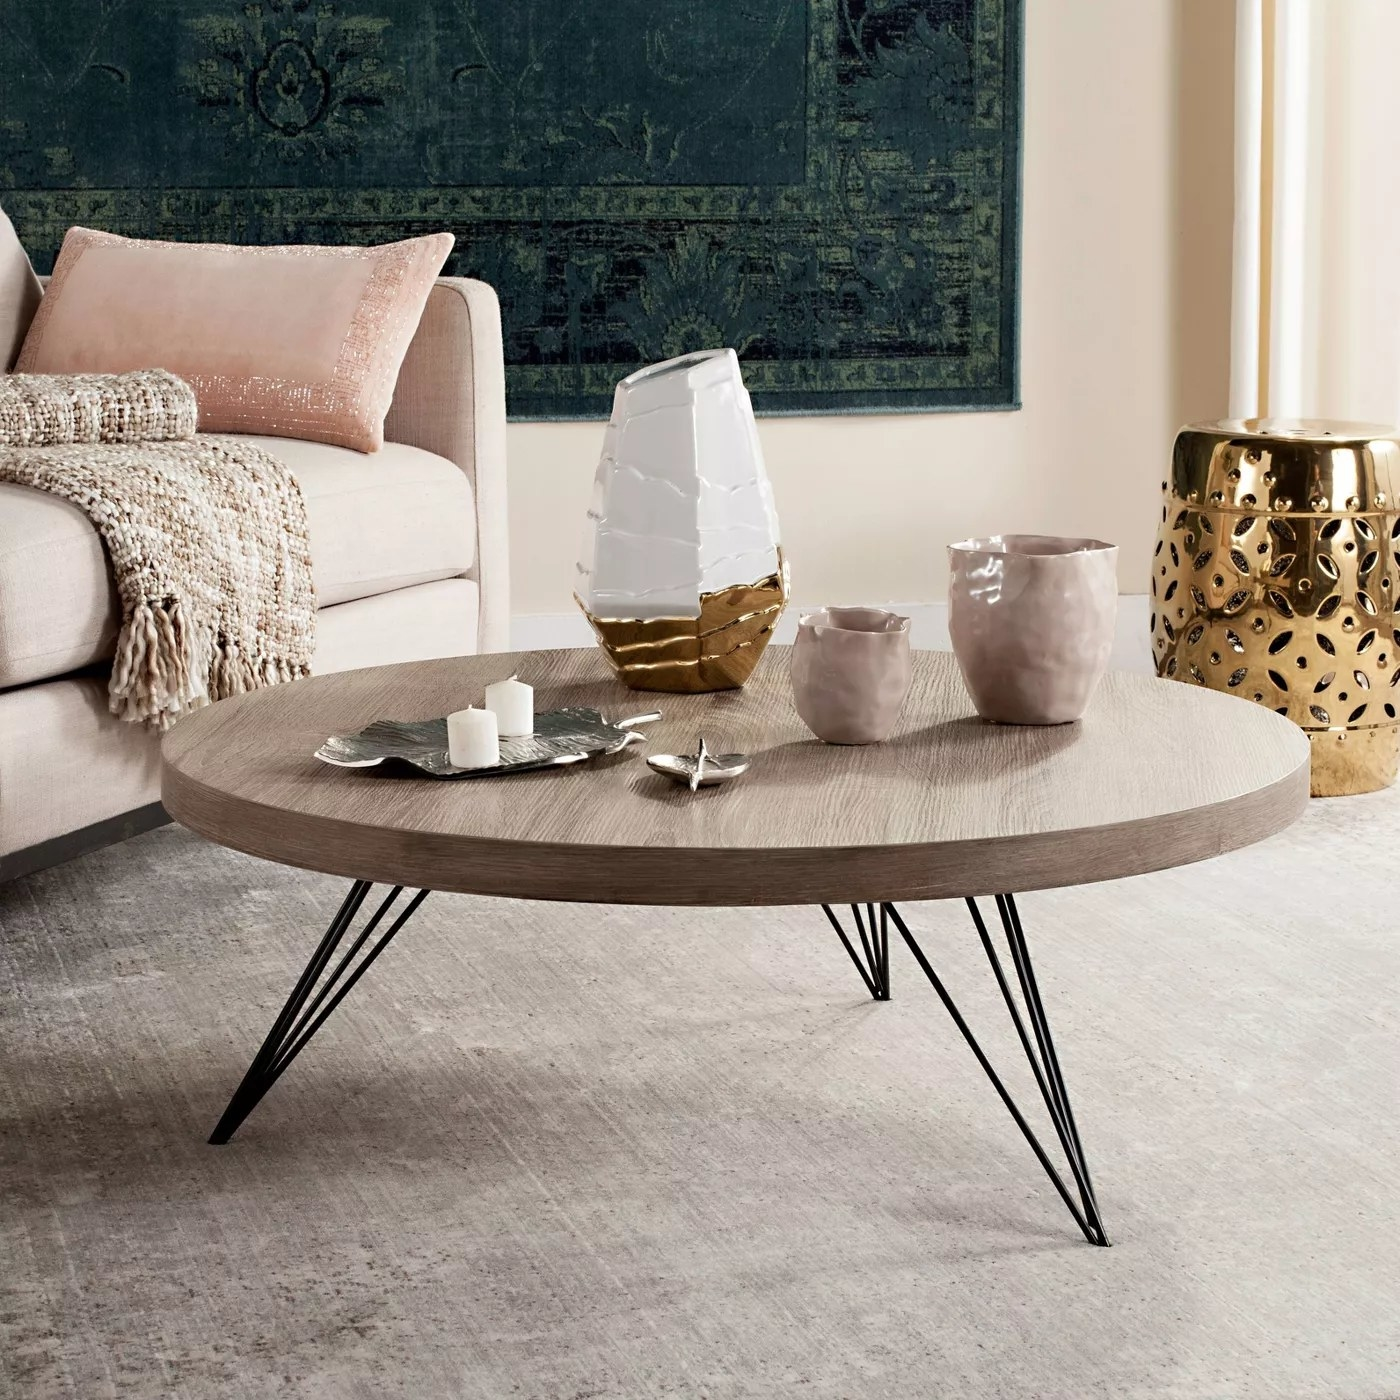 A round, light gray coffee table with black, hairpin legs